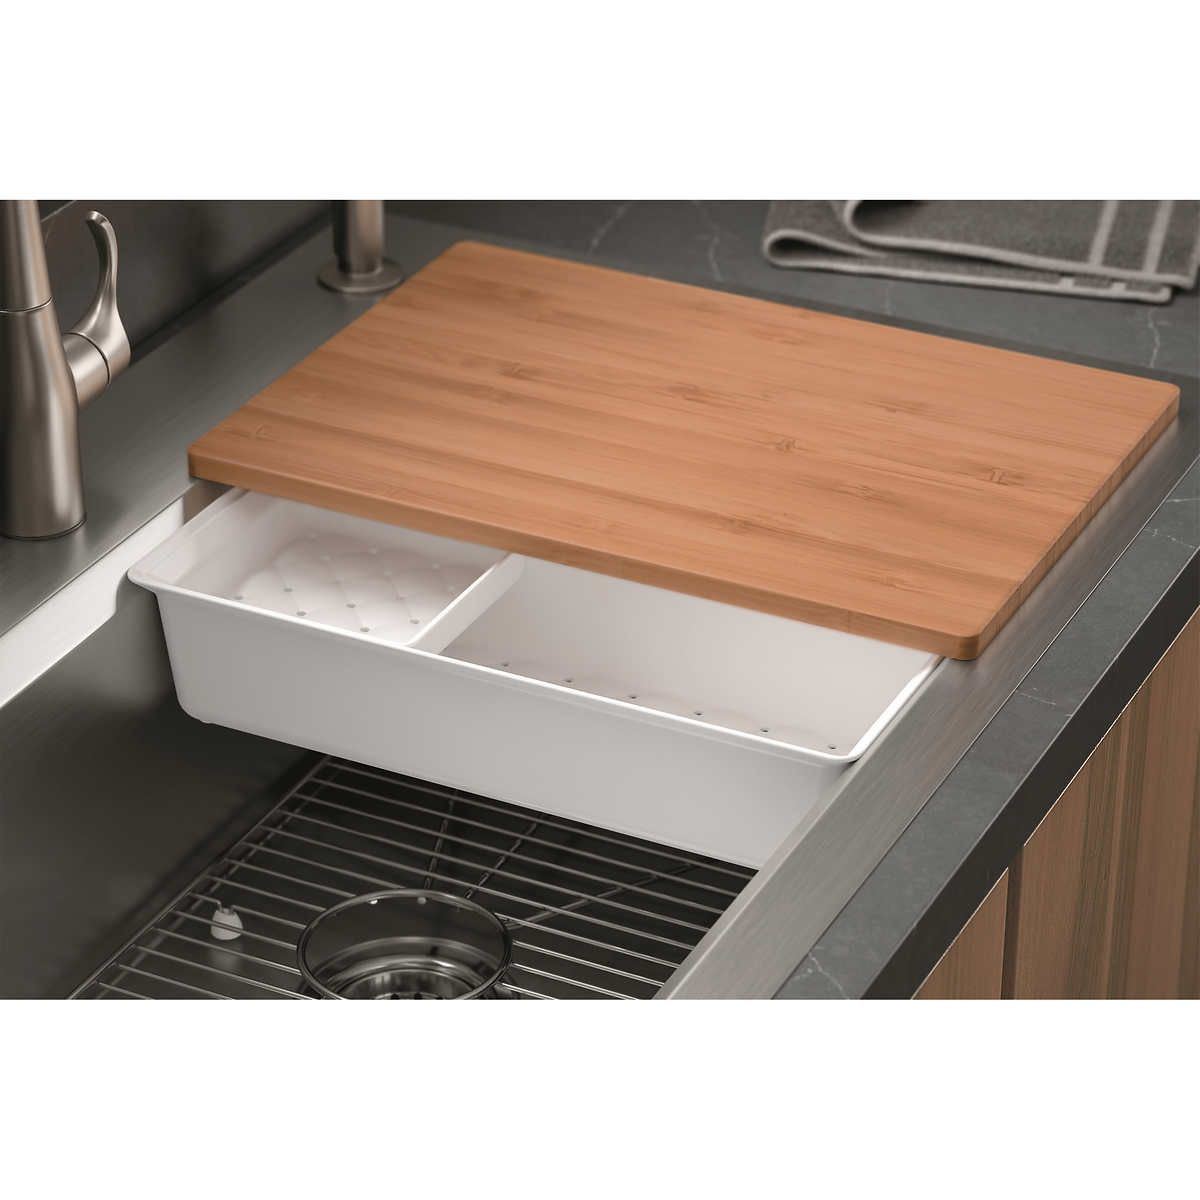 Kohler Cater Accessorized Kitchen Sink Stainless Steel Cleaning Stainless Steel Sinks Sink